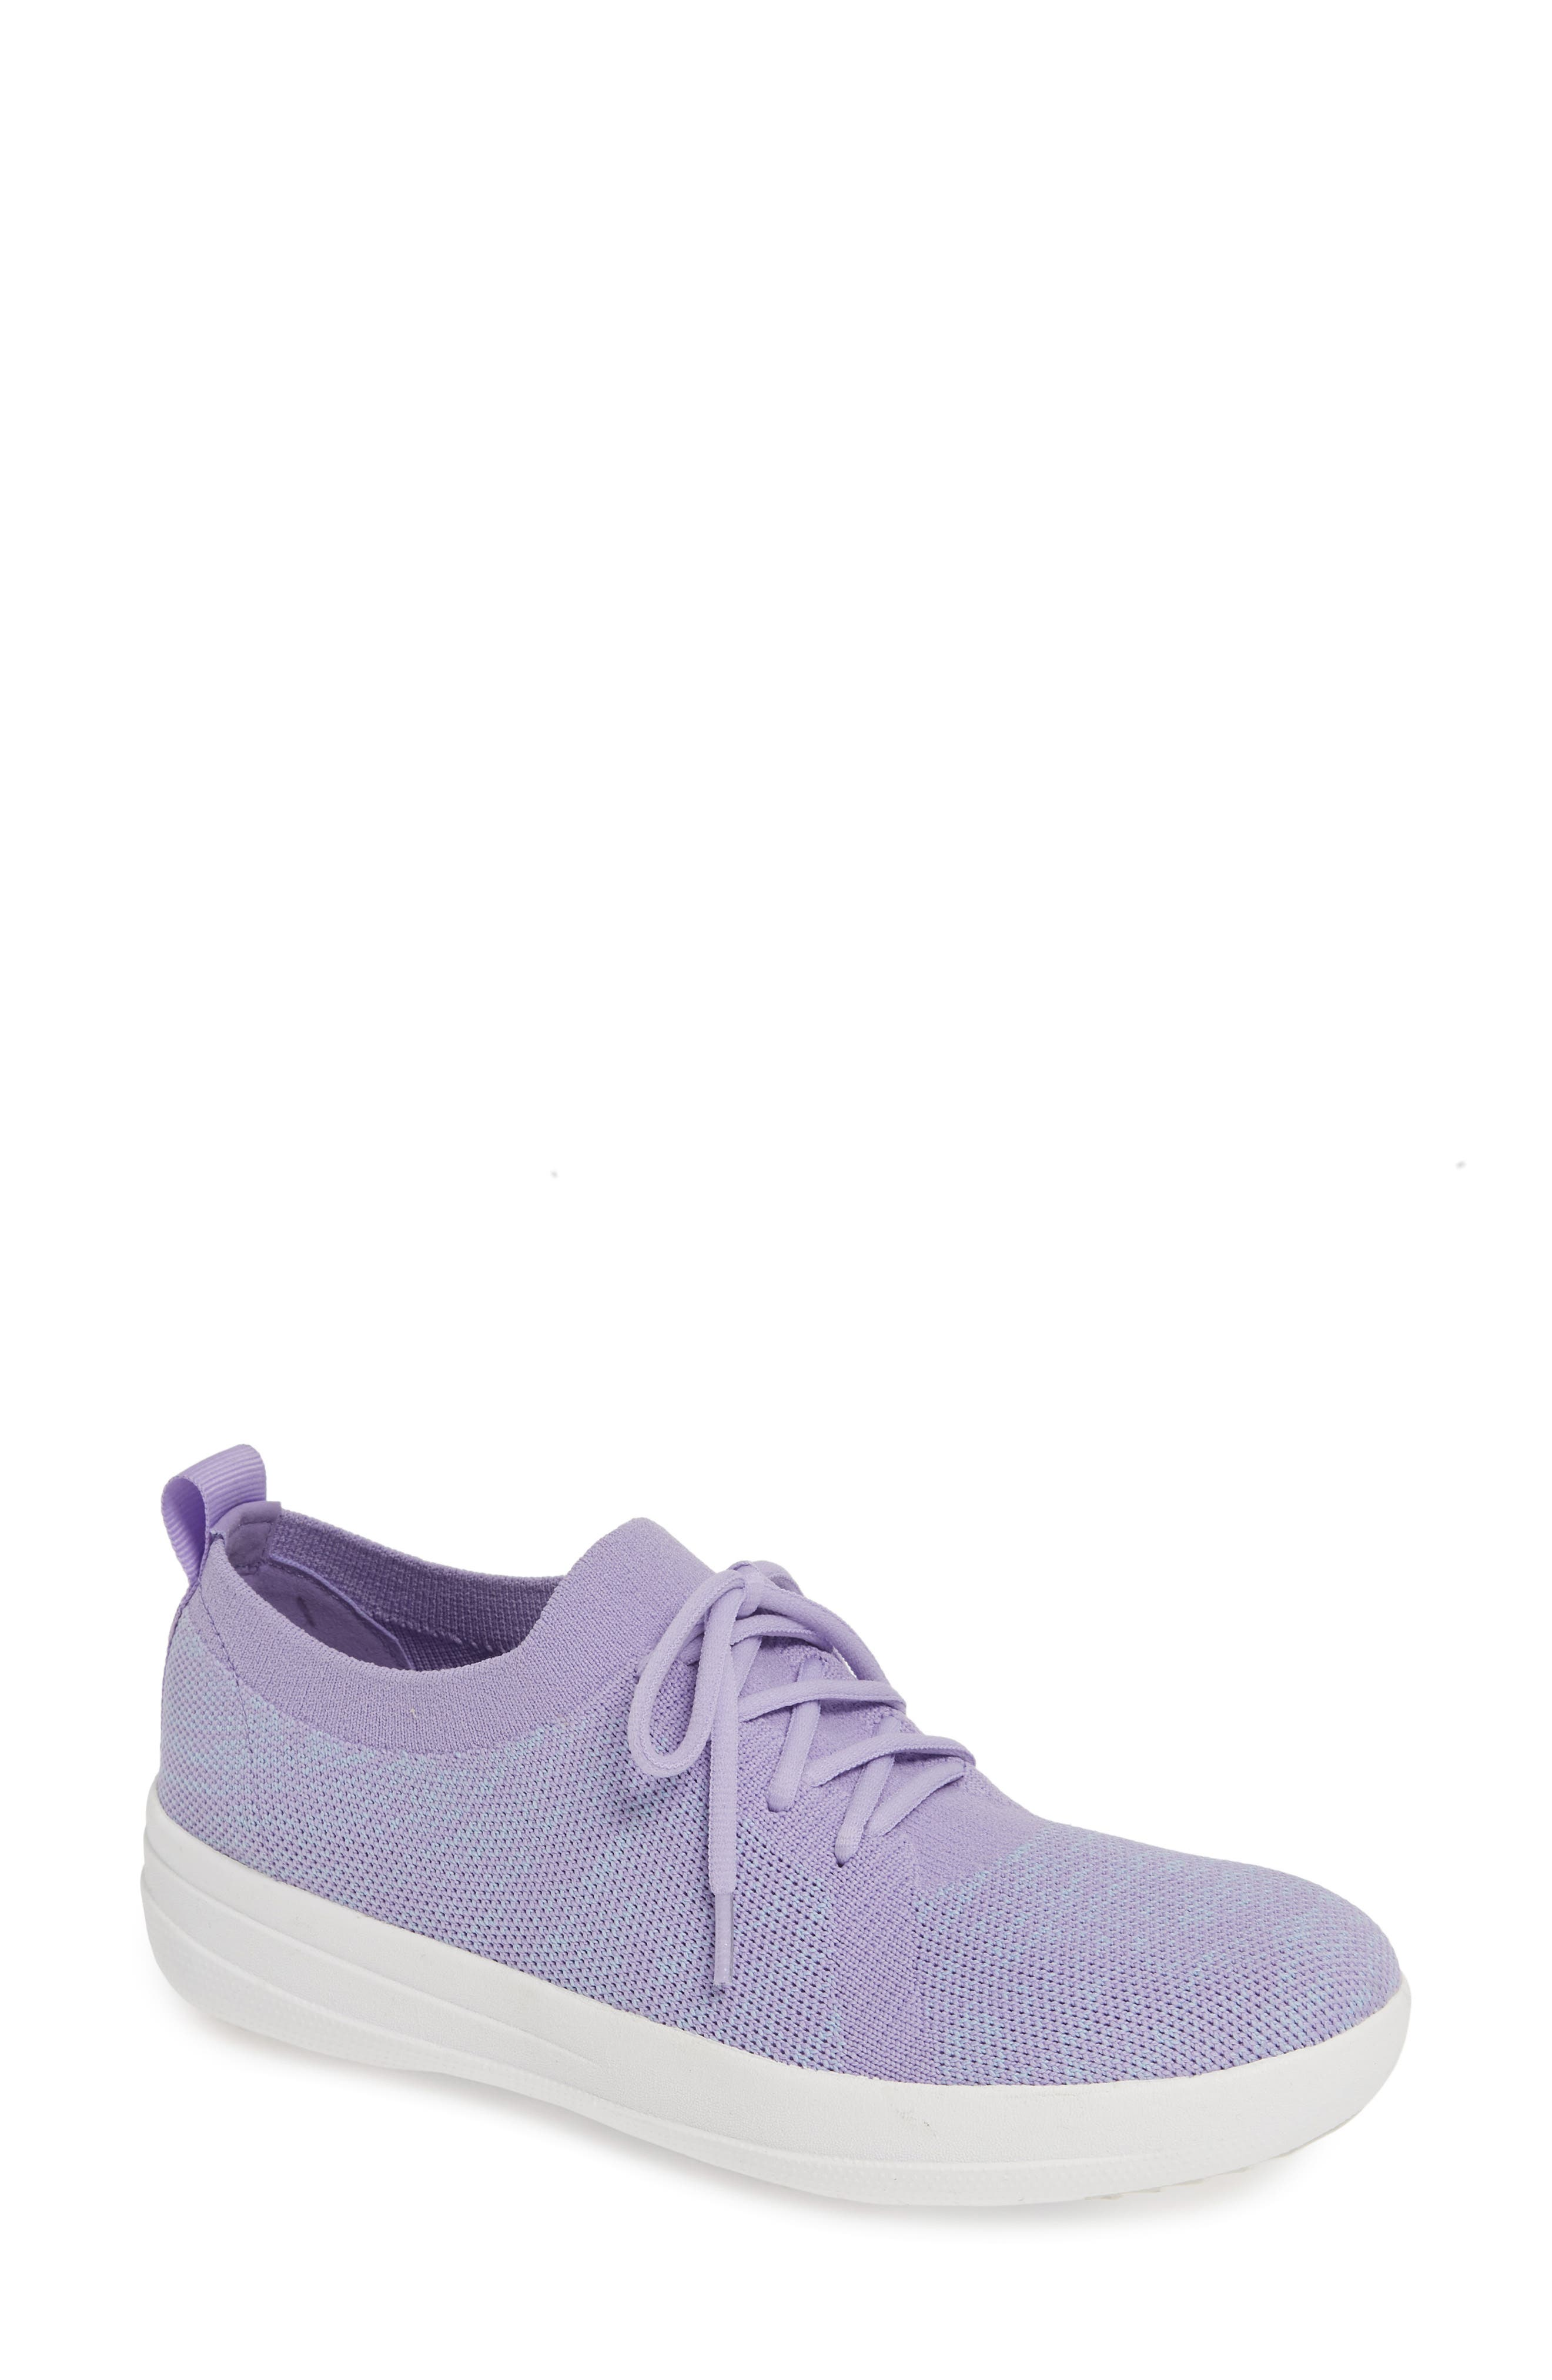 FITFLOP, F-Sporty Uberknit<sup>™</sup> Sneaker, Main thumbnail 1, color, 535